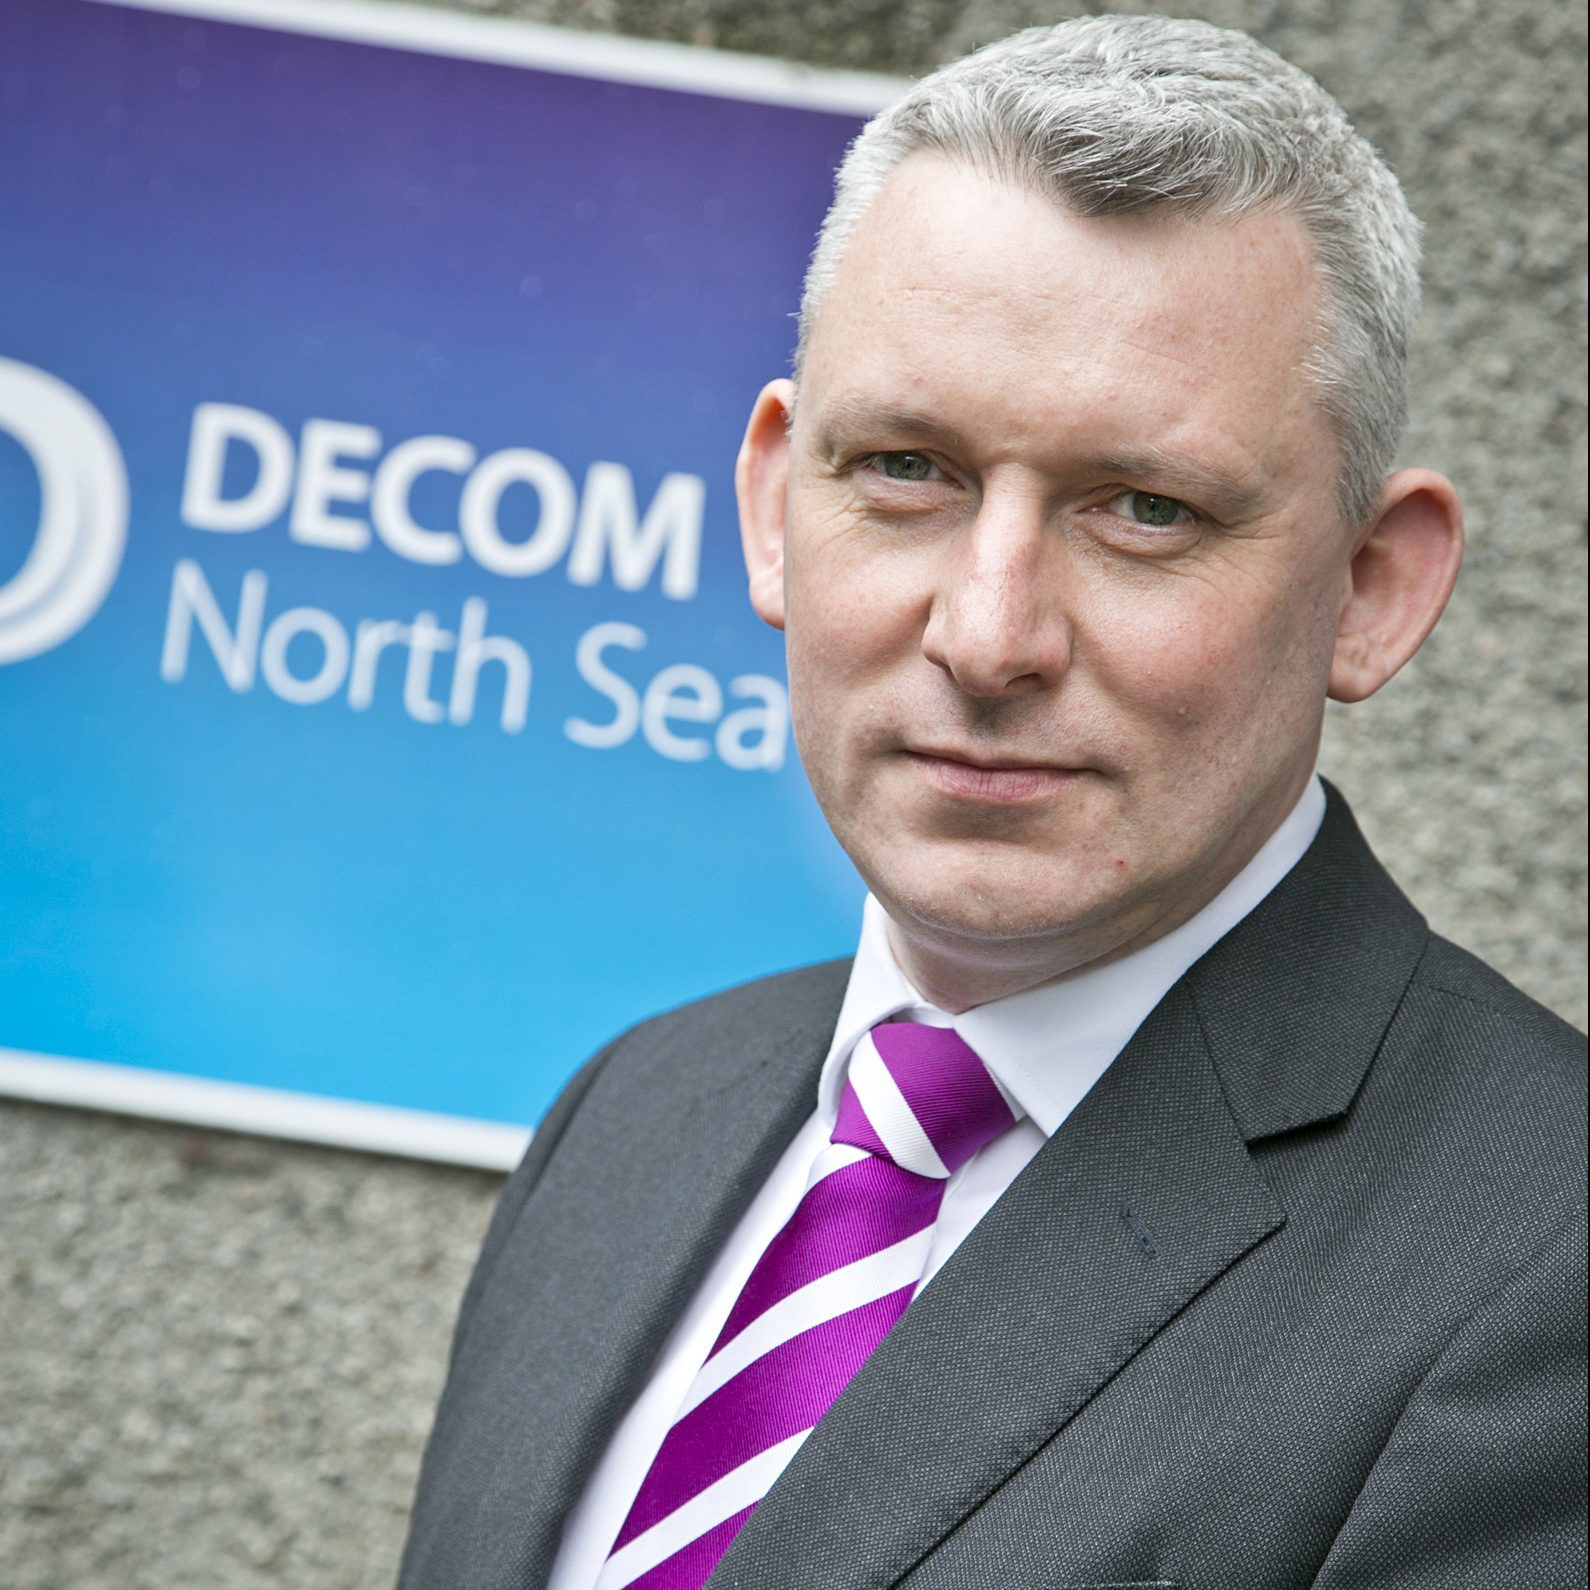 Decom North Sea chief executive Roger Esson